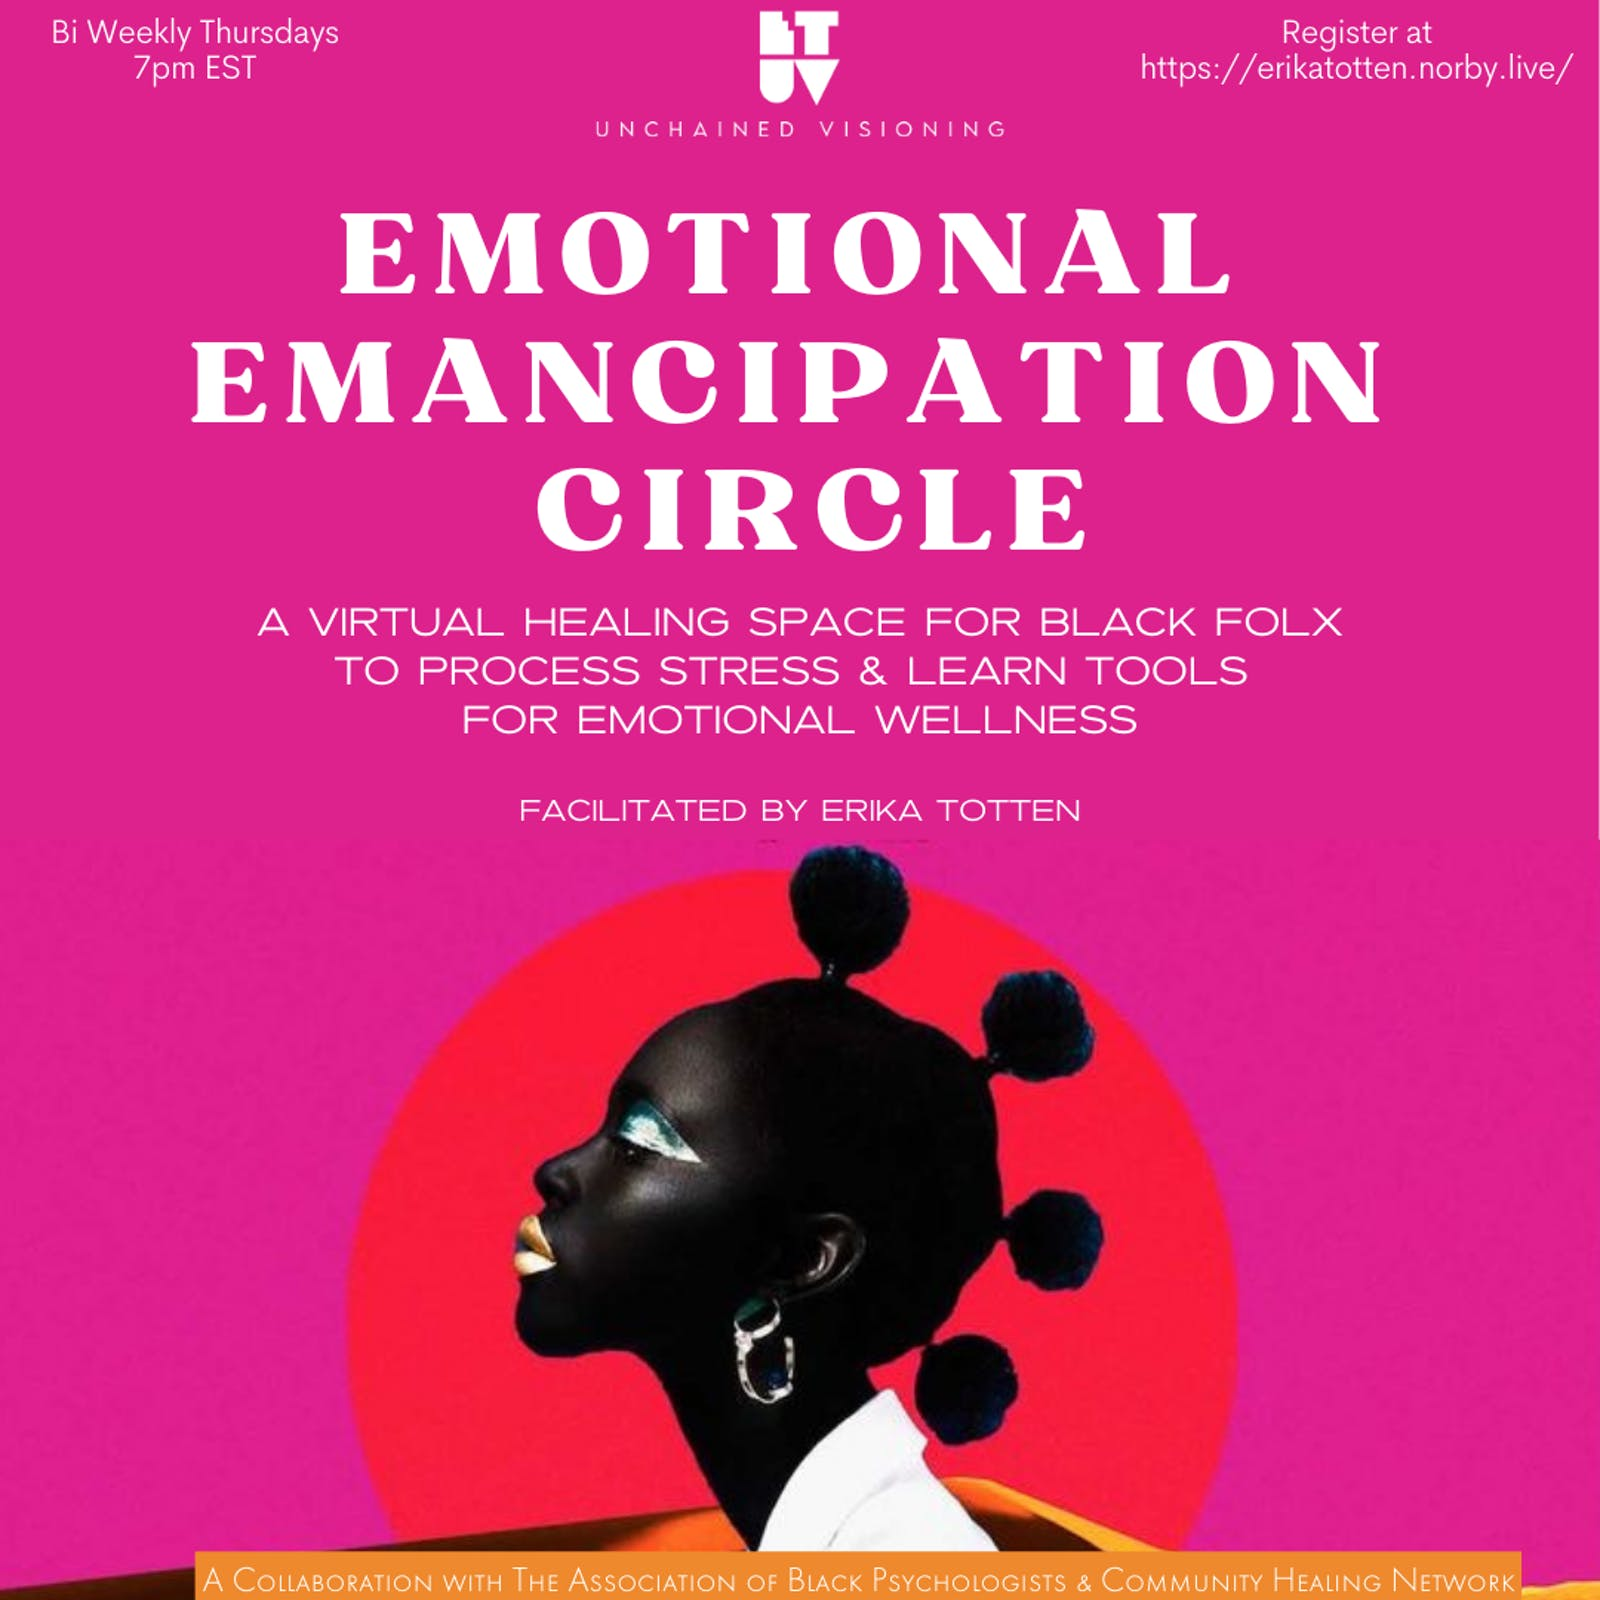 Join Our Emotional Emancipation Circle